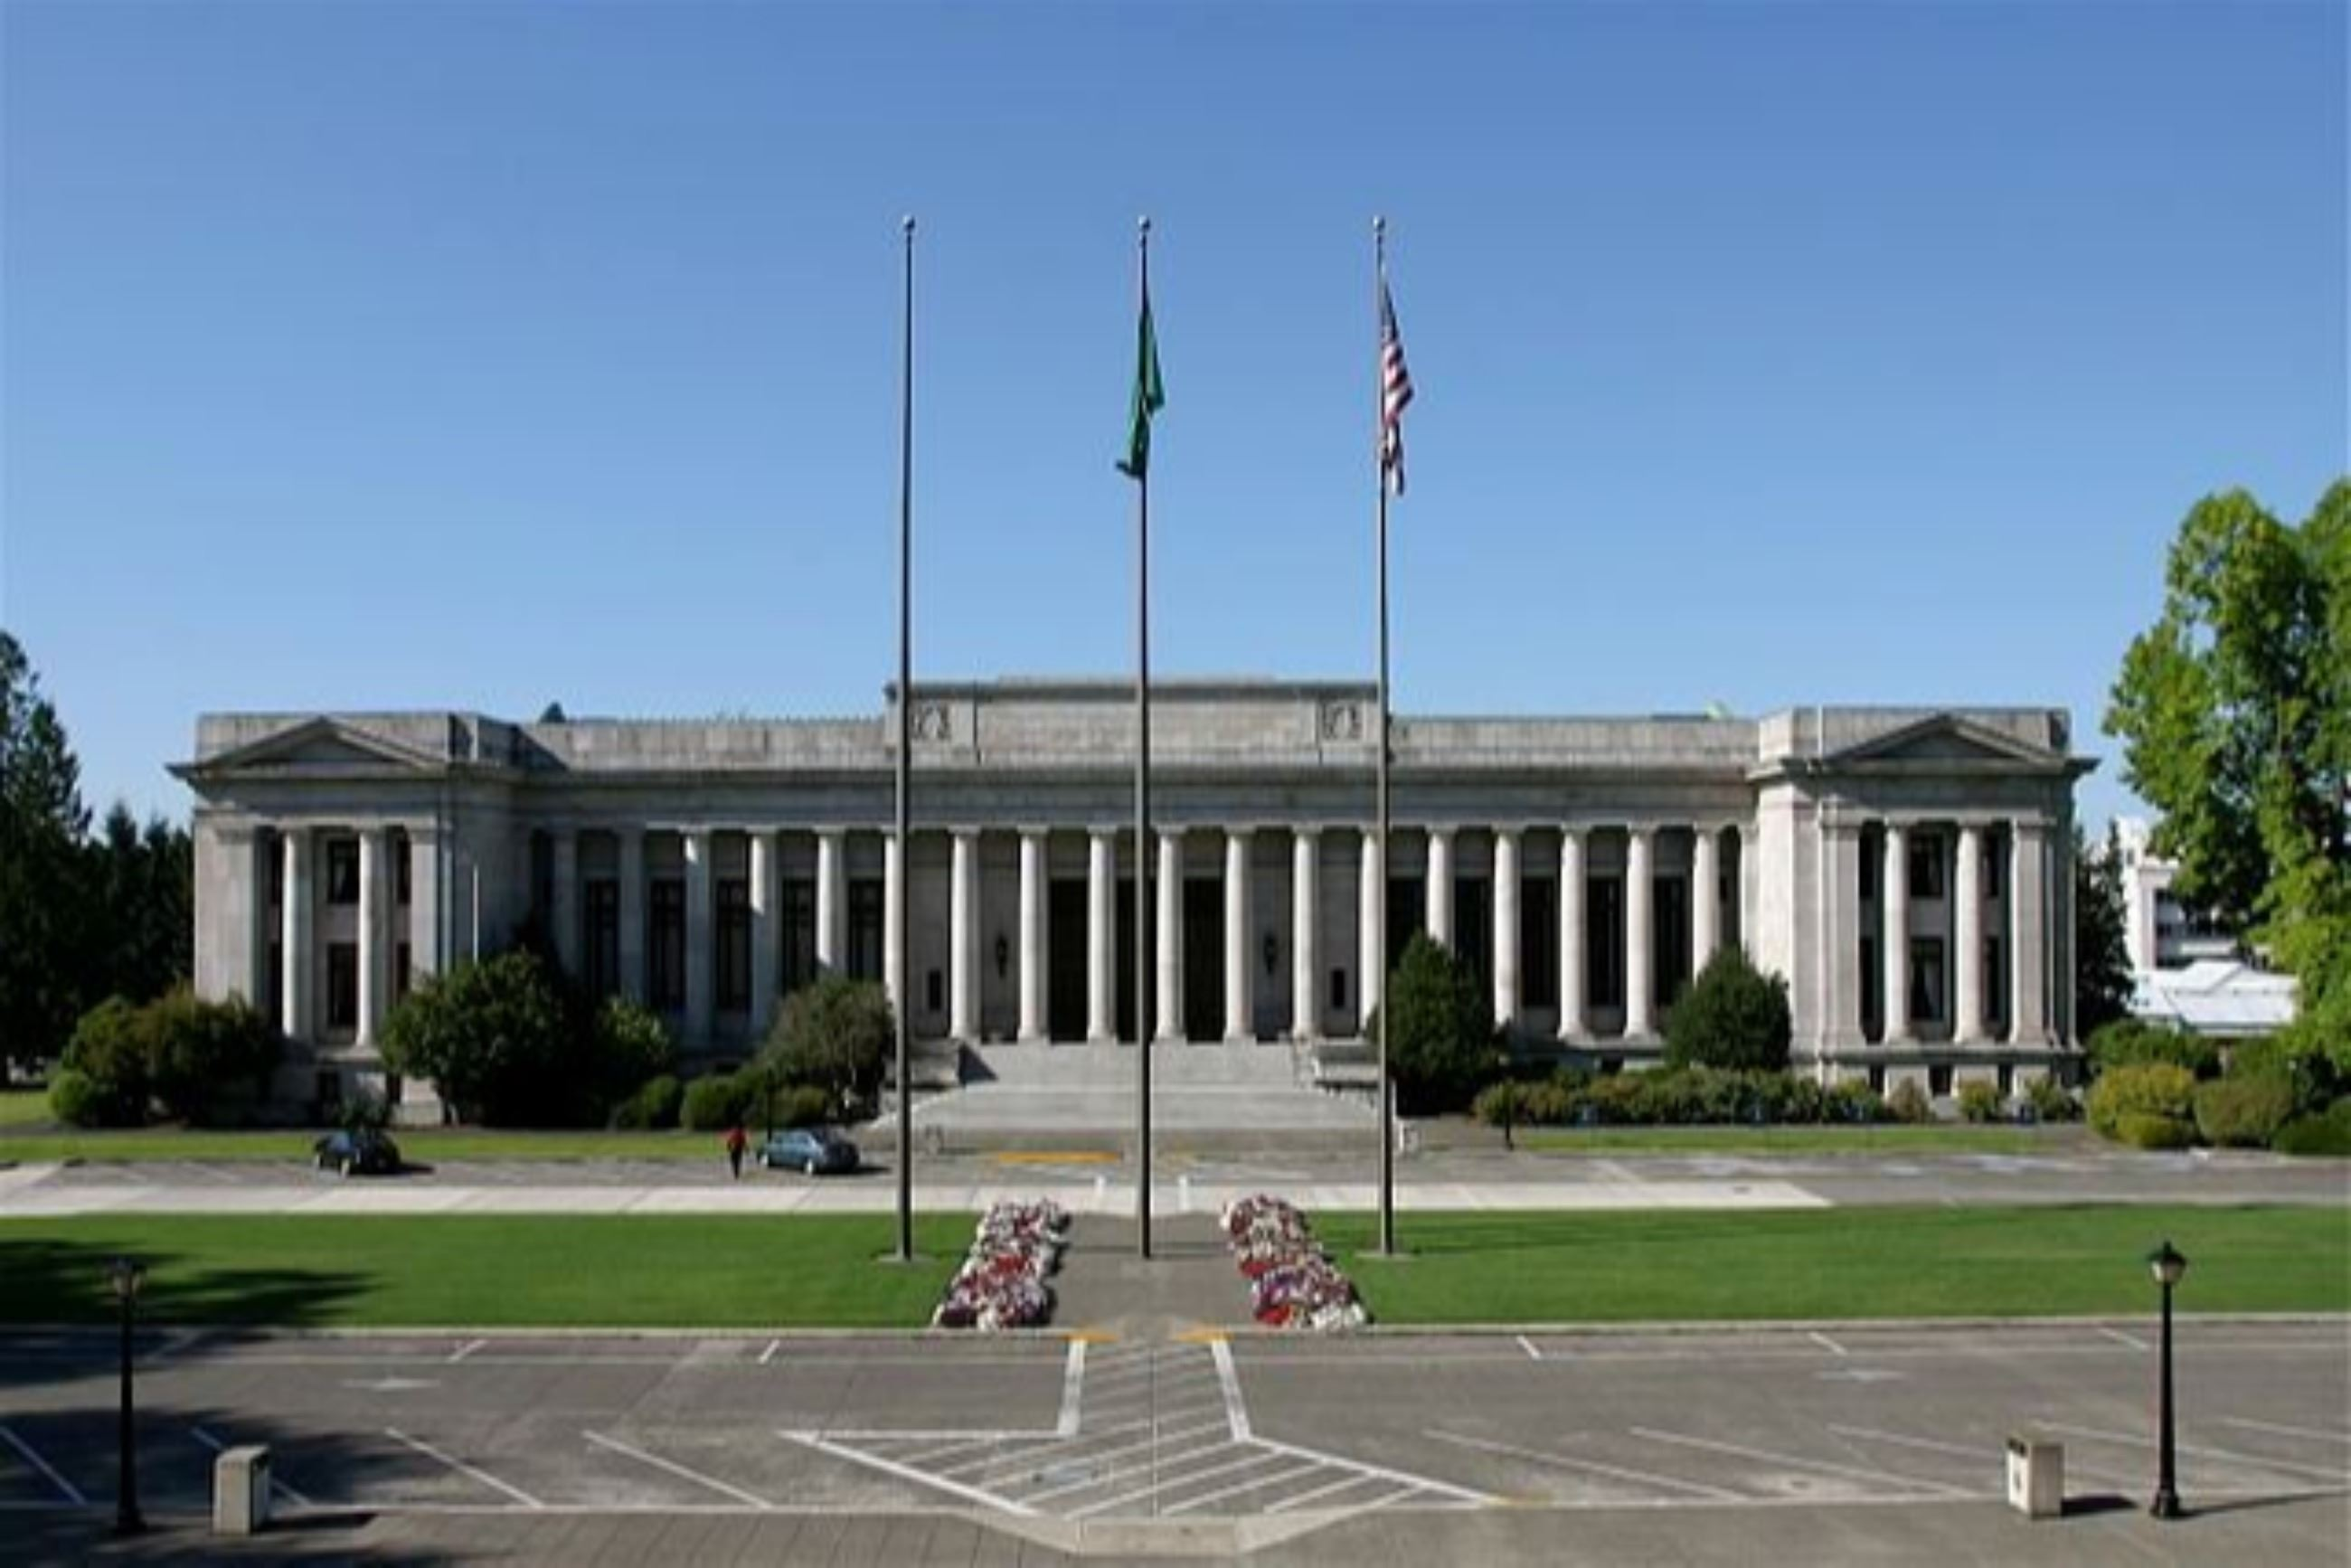 The-Temple-of-Justice-at-the-Washington-State-Capitol-in-Olympia-Washington.